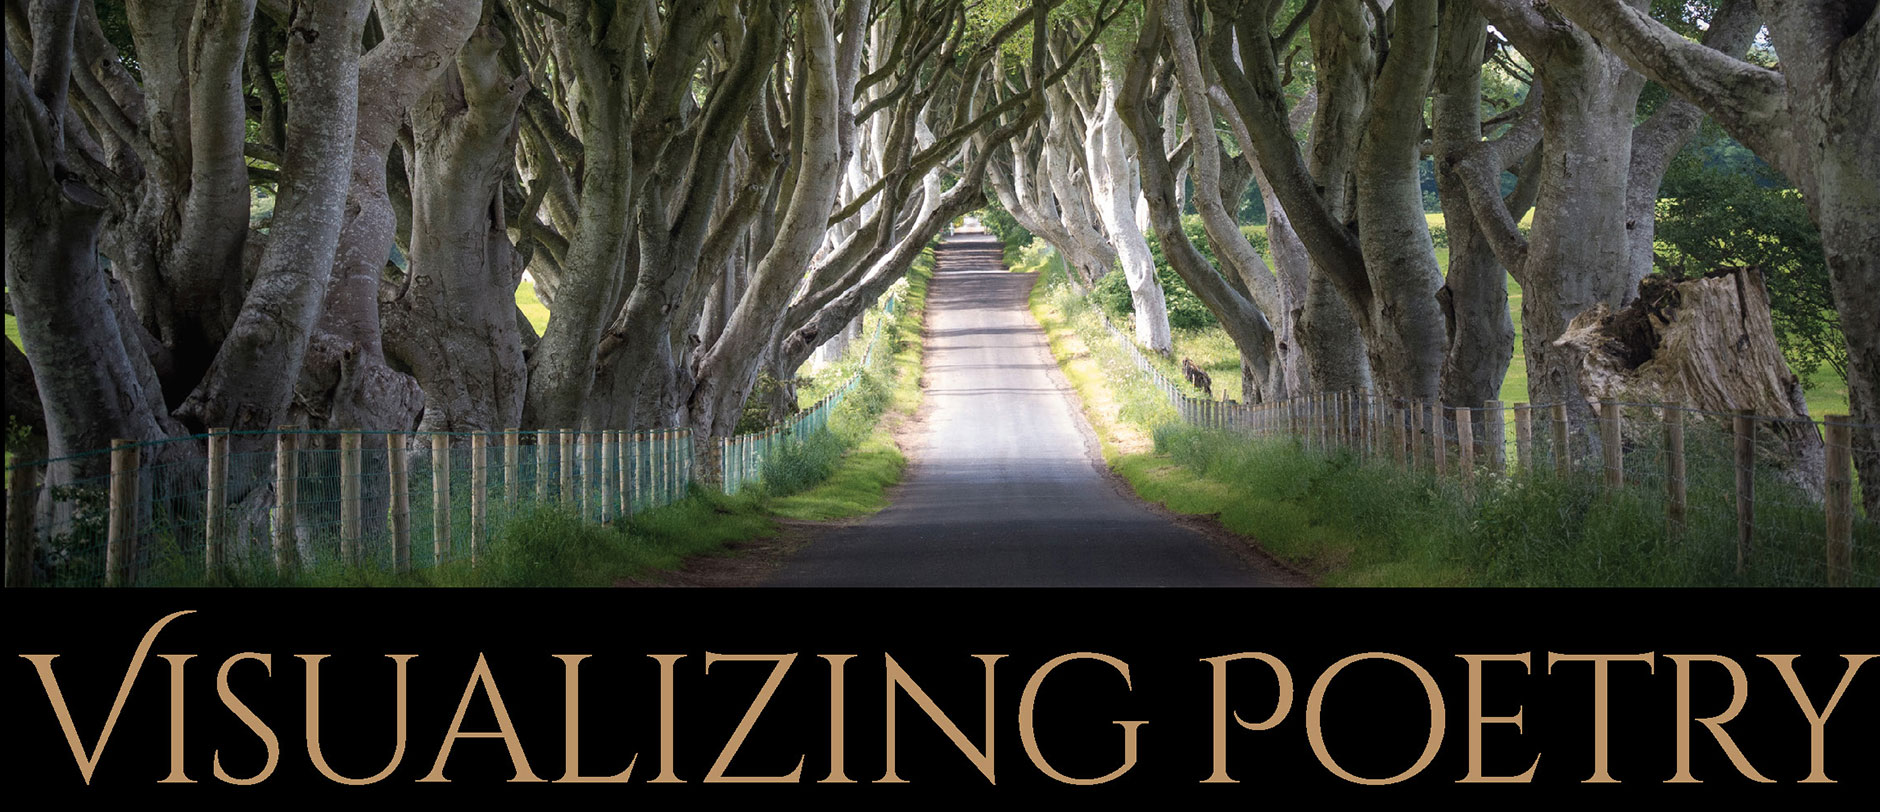 """""""Visualizing Poetry"""" by Eileen McCarney Muldoon and Olaf Willoughby"""